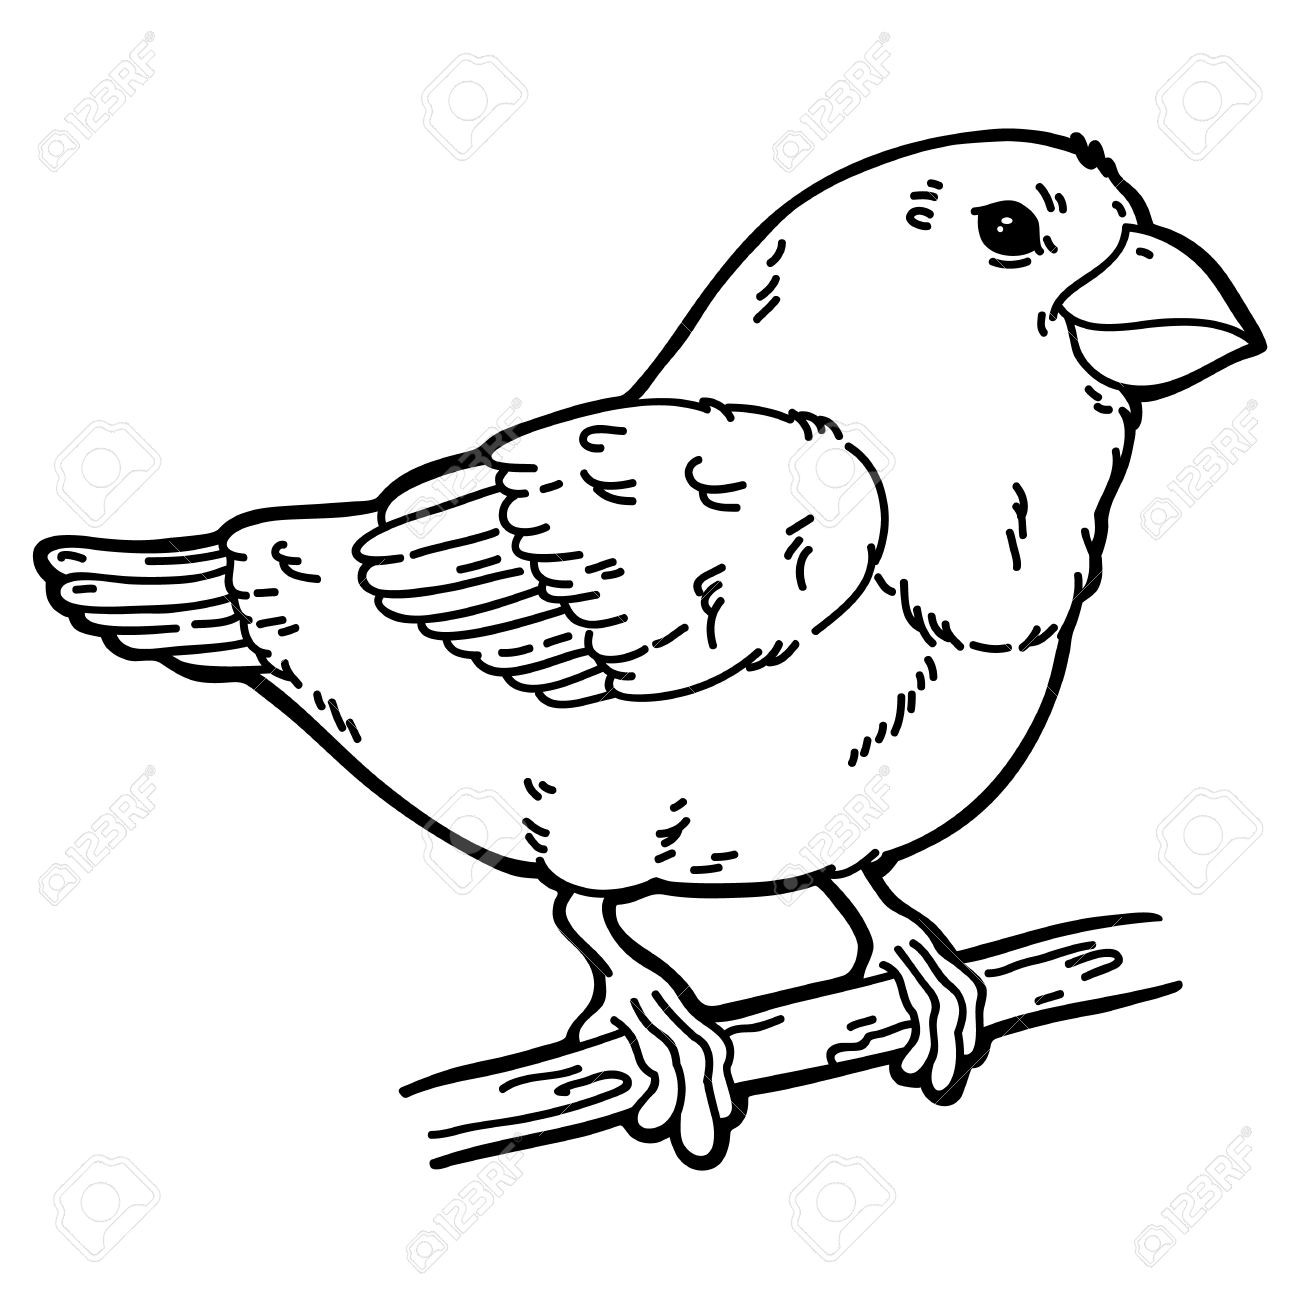 1300x1300 Image Result For Outline Of Bird Bird Outline Ideas